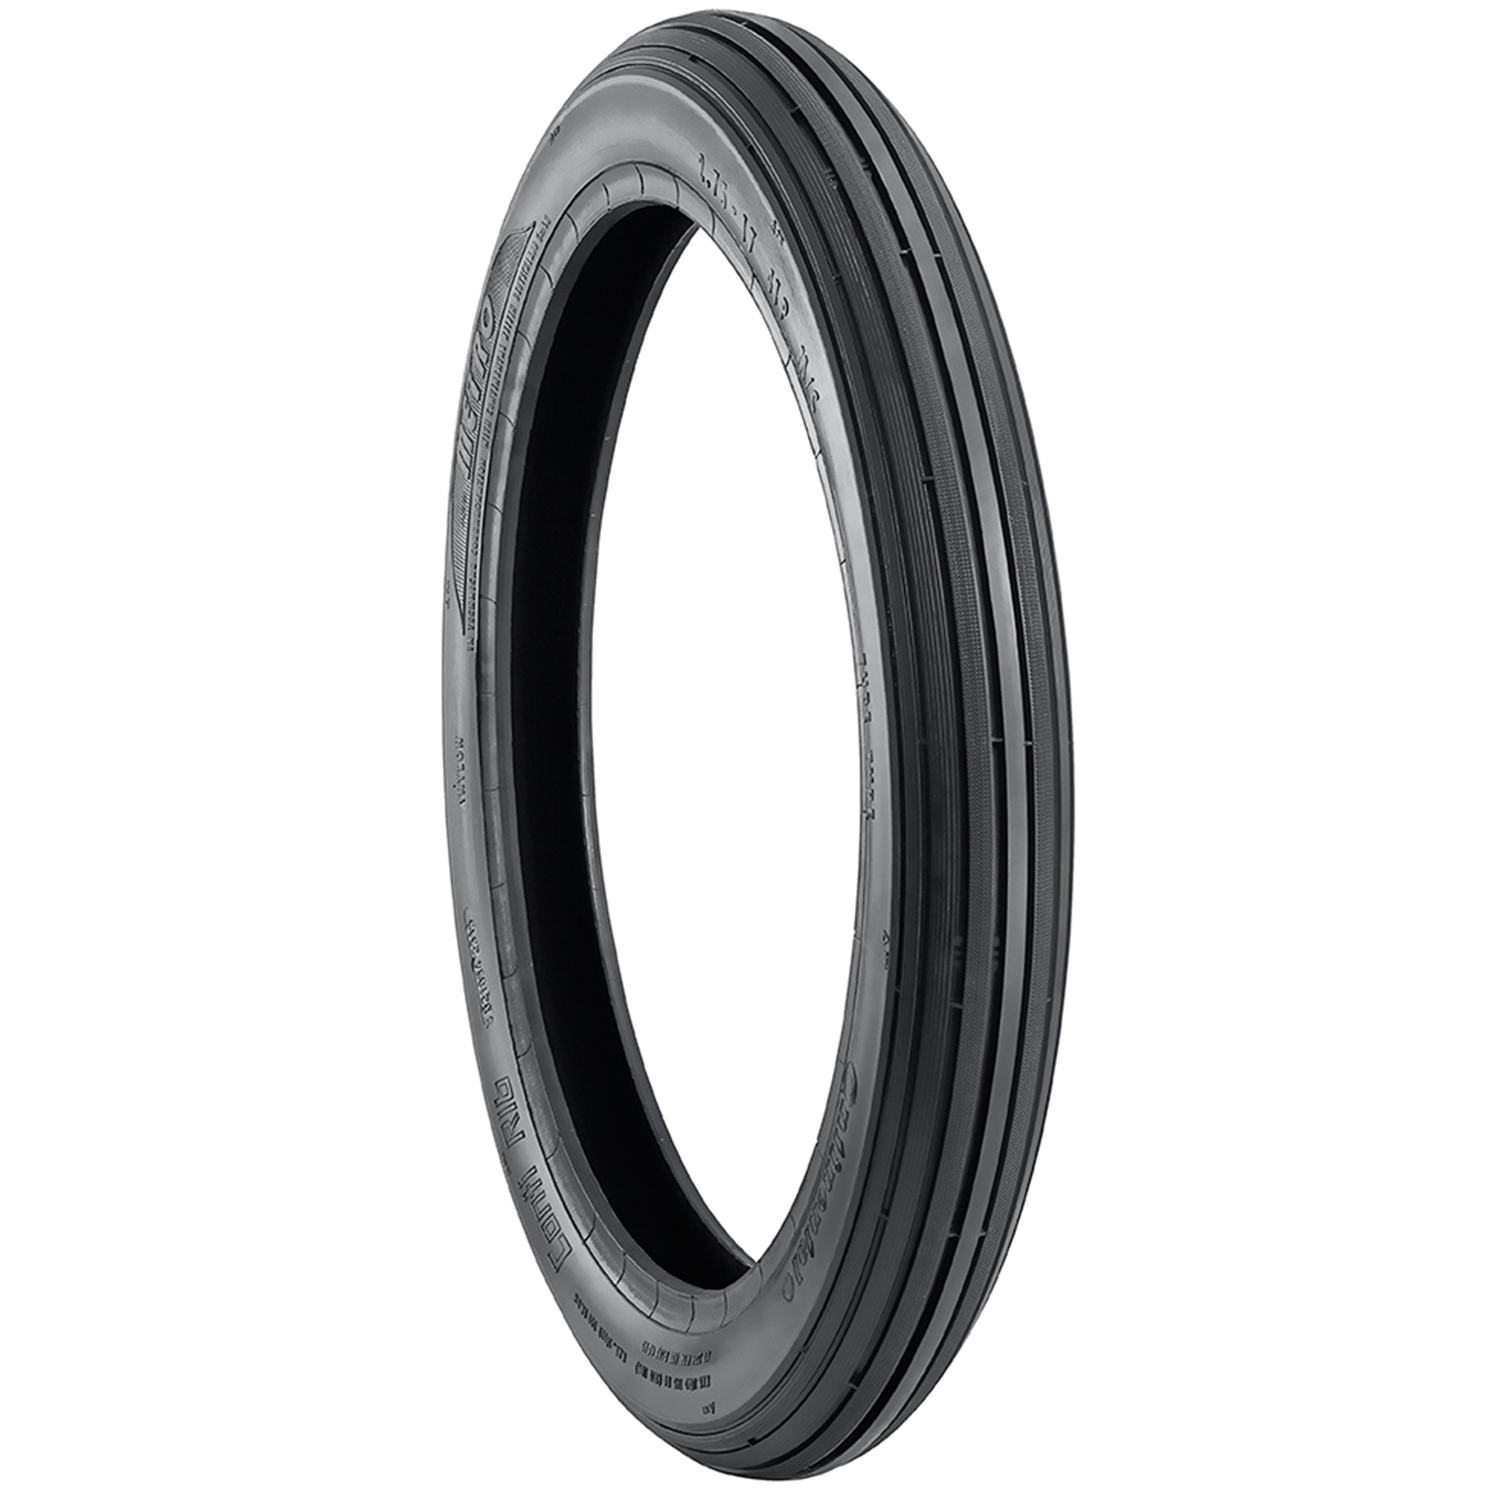 Metro CONTI RIB PLUS 2.75 17 Requires Tube Front Two-Wheeler Tyre